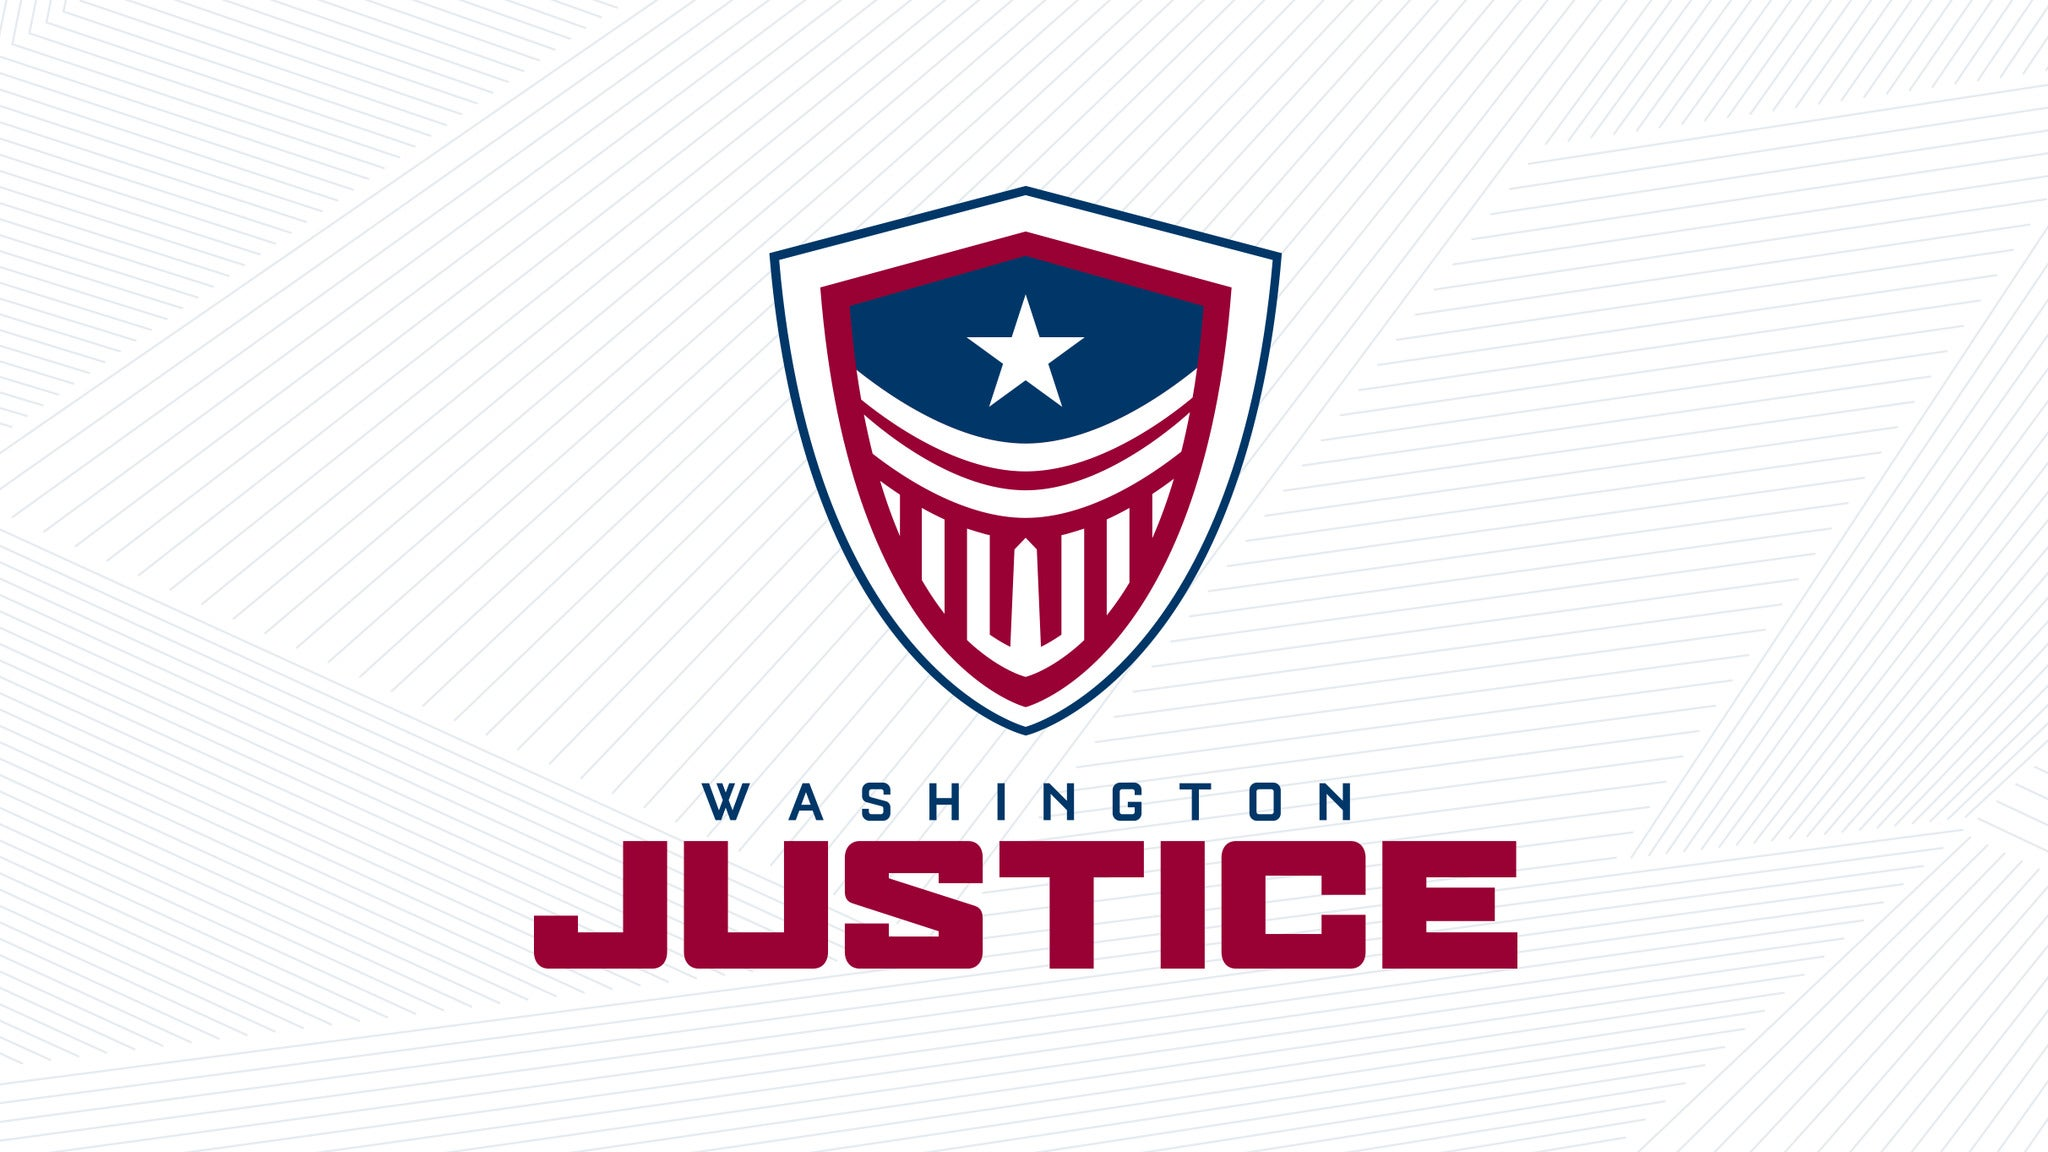 Washington Justice Overwatch Homestand III - Single Day